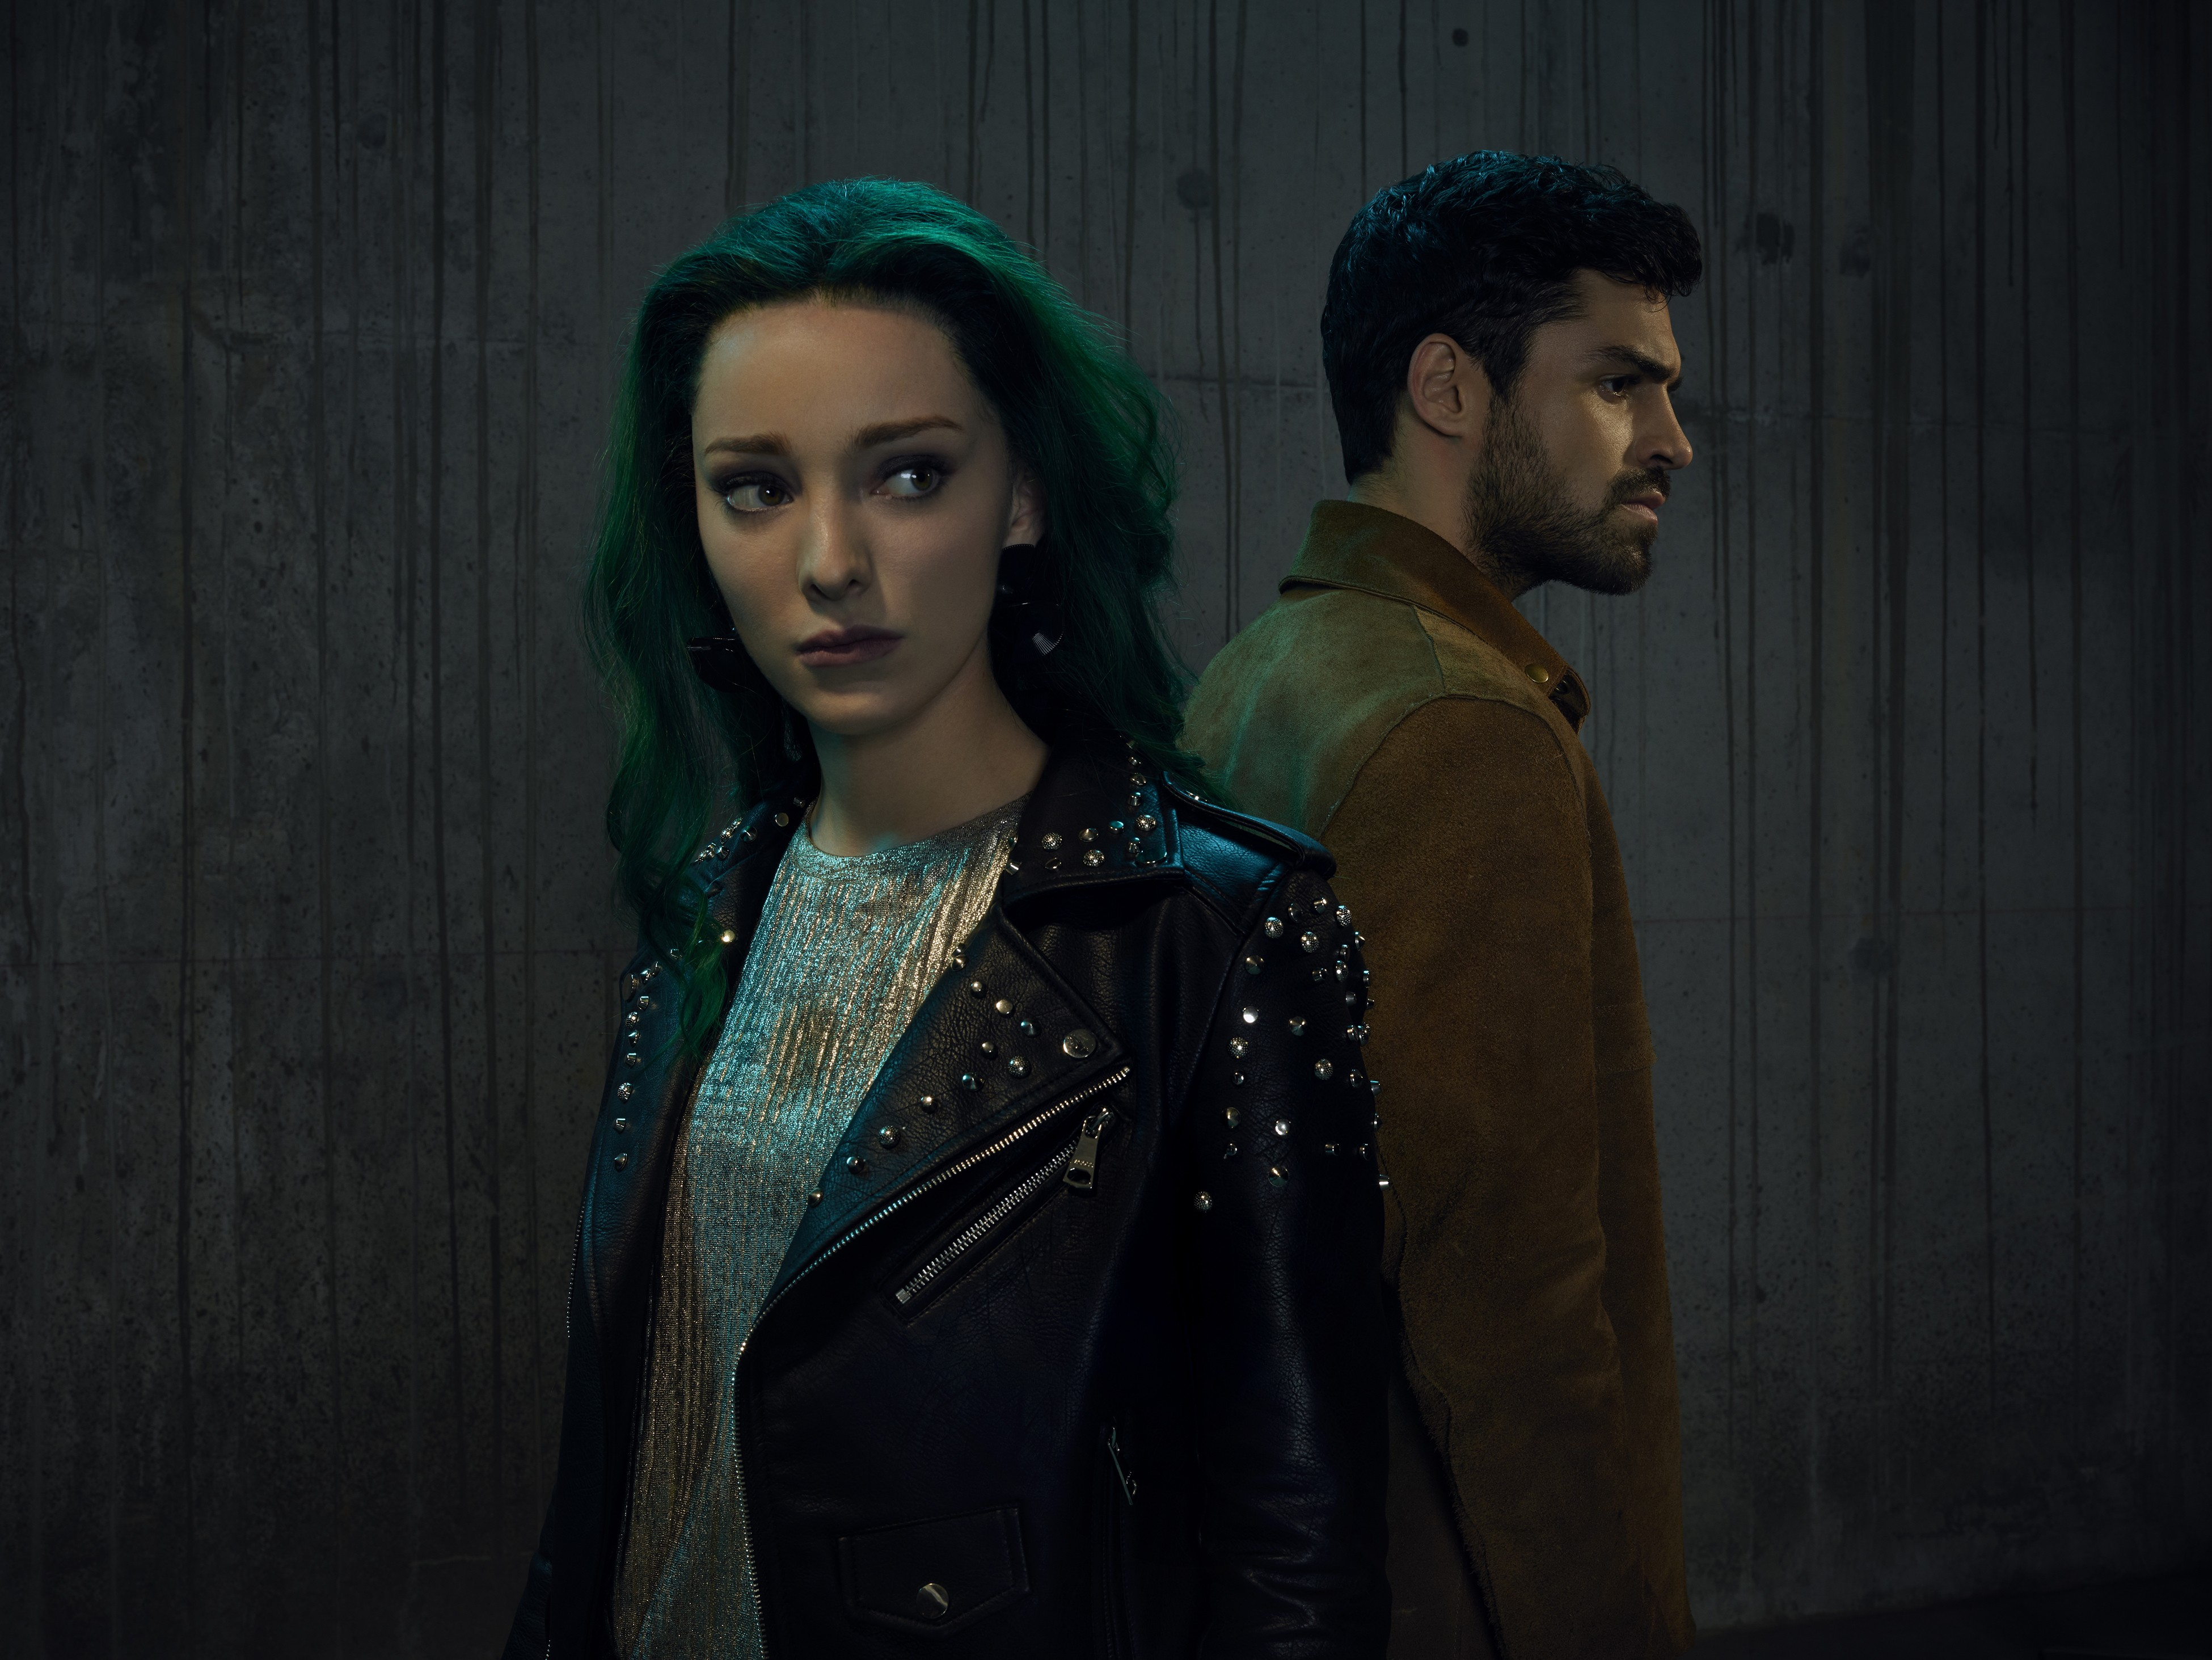 The Gifted Season 2 Official Picture - Lorna Dane and Marcos Diaz